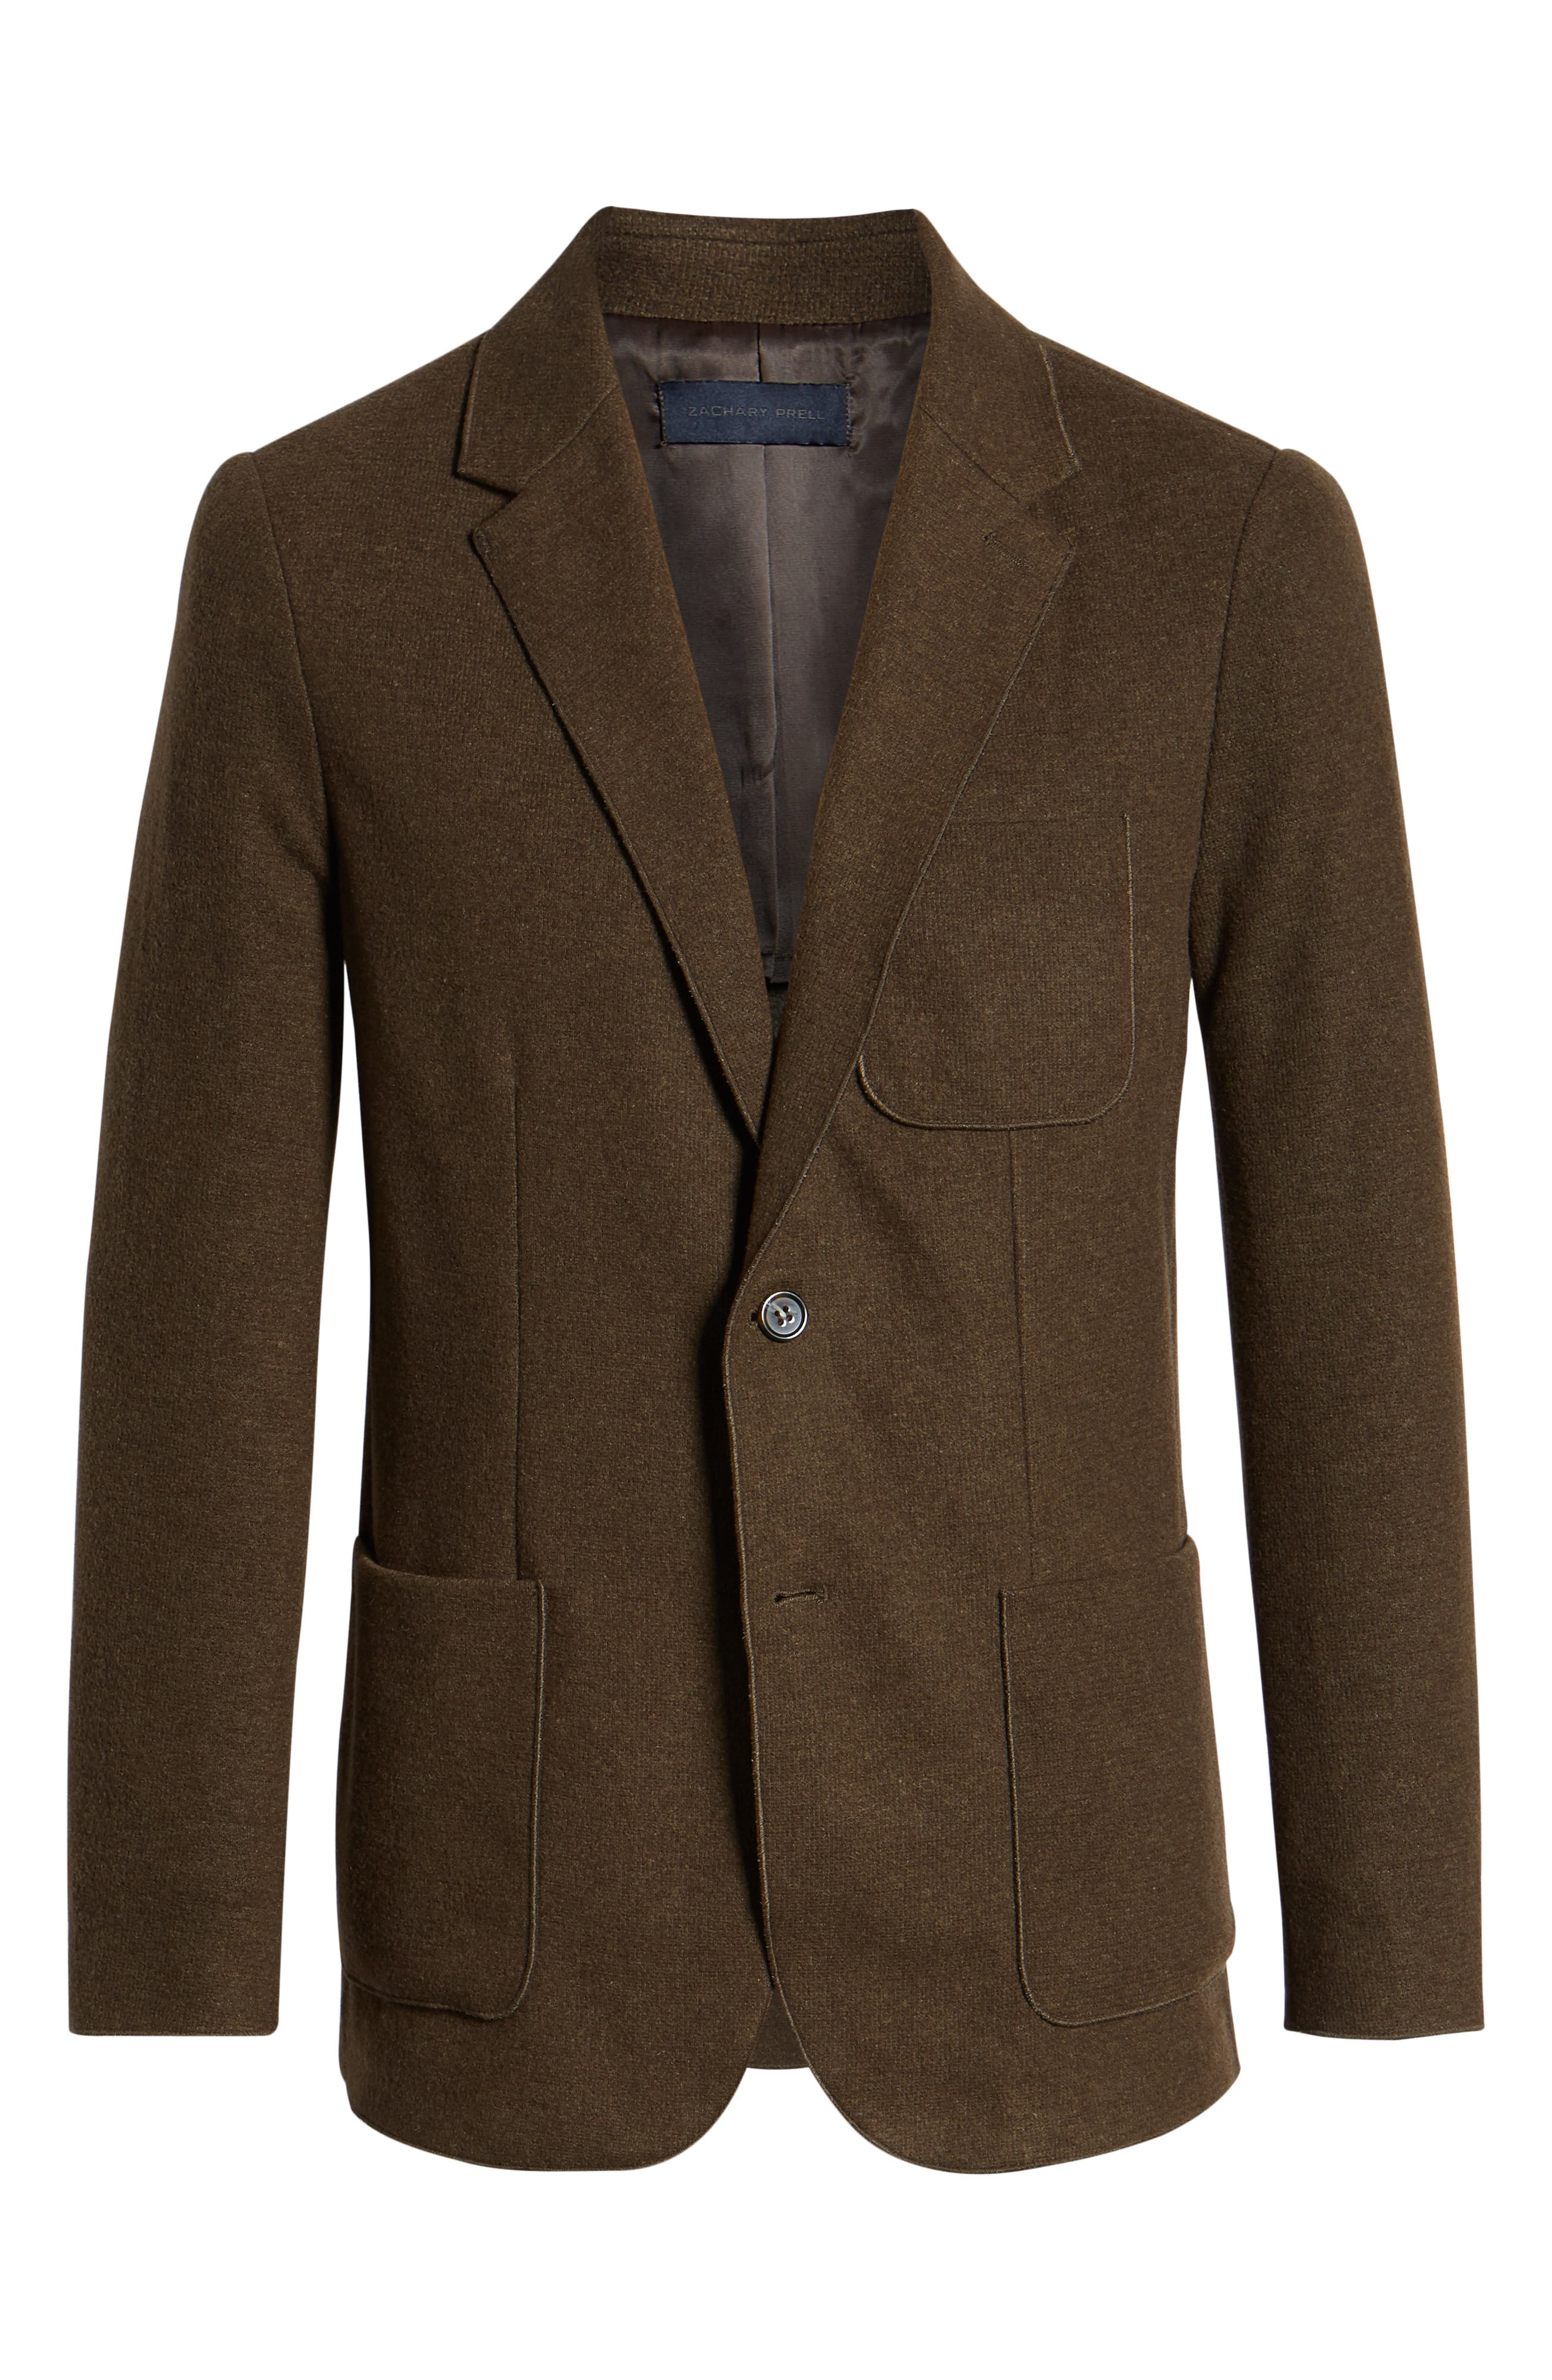 Plymouth Regular Fit Knit Sport Coat,                             Alternate thumbnail 5, color,                             BROWN